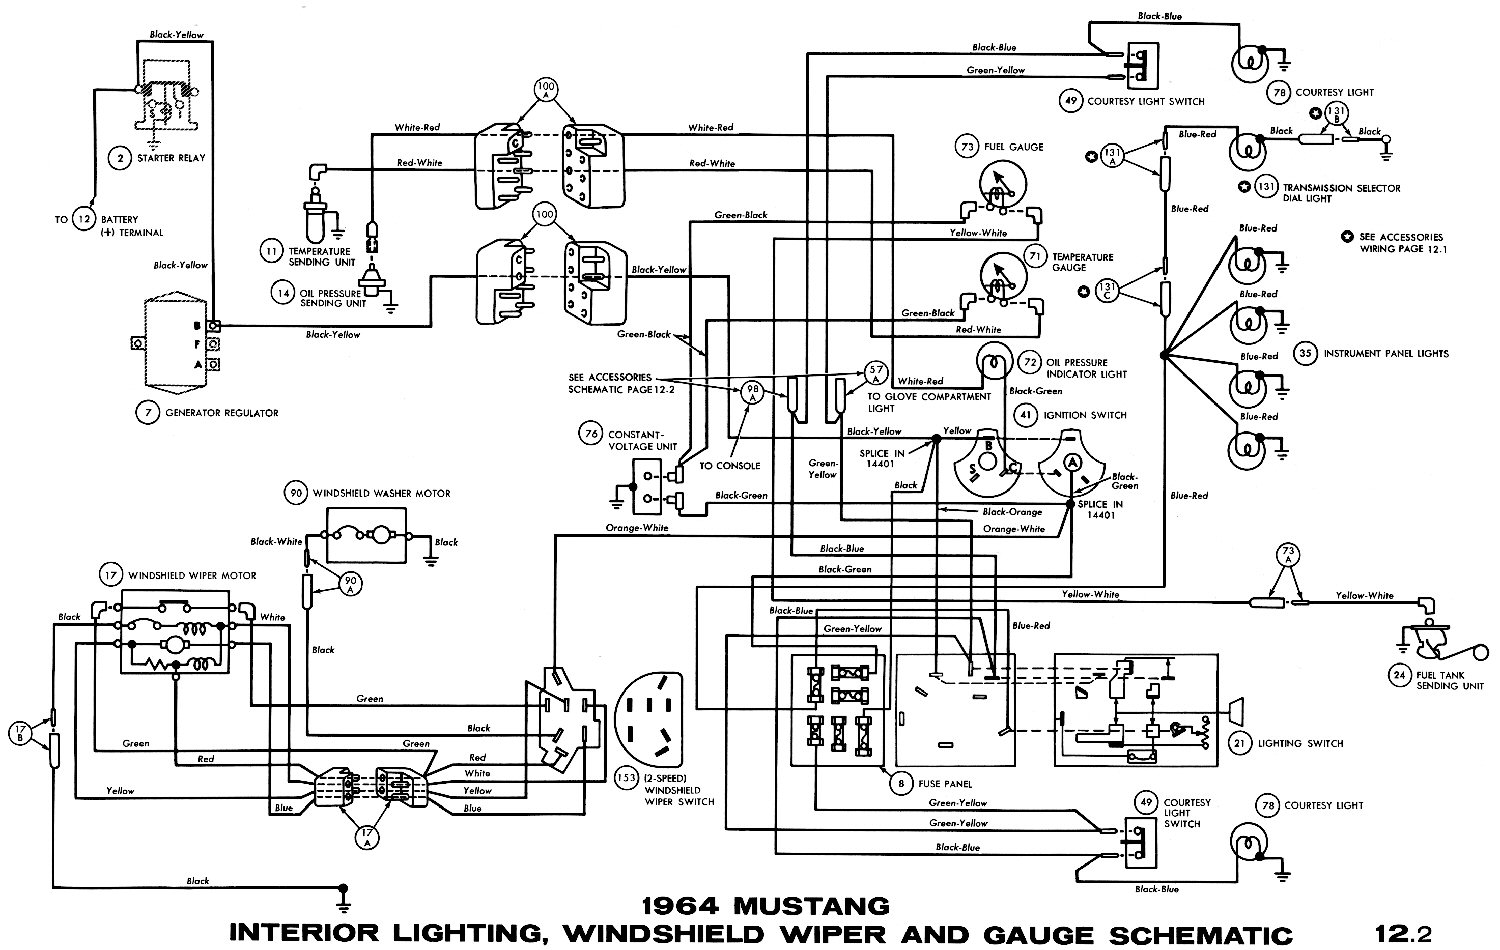 1964k 66 mustang wiring diagram online 65 ford mustang wiring diagram 1965 ford mustang wiring diagrams at sewacar.co